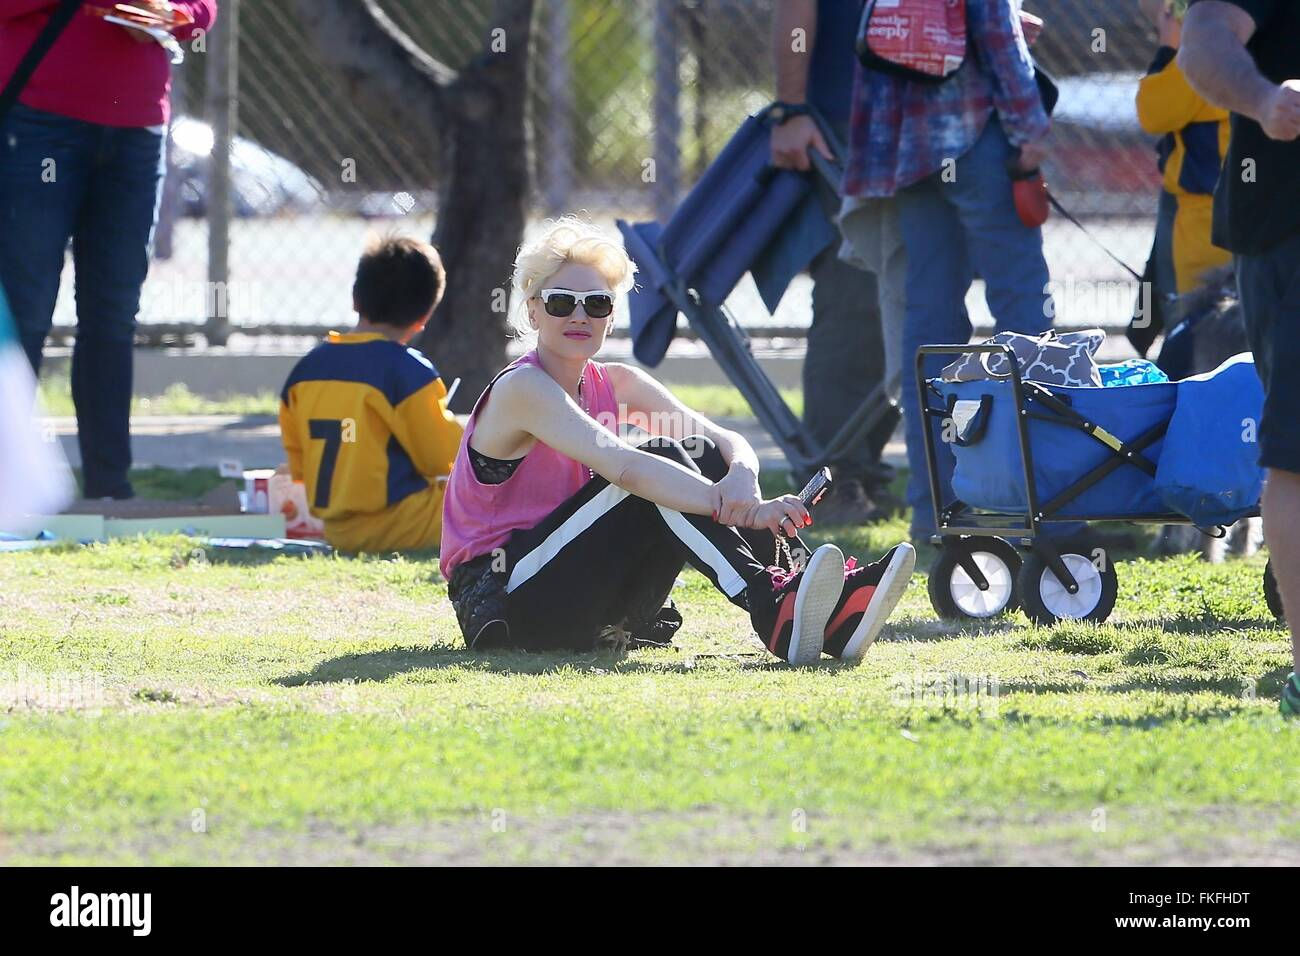 Gwen Stefani watches her son Zuma Rossdale play flag football at the park. Her two other sons, Kingston and Apollo, - Stock Image